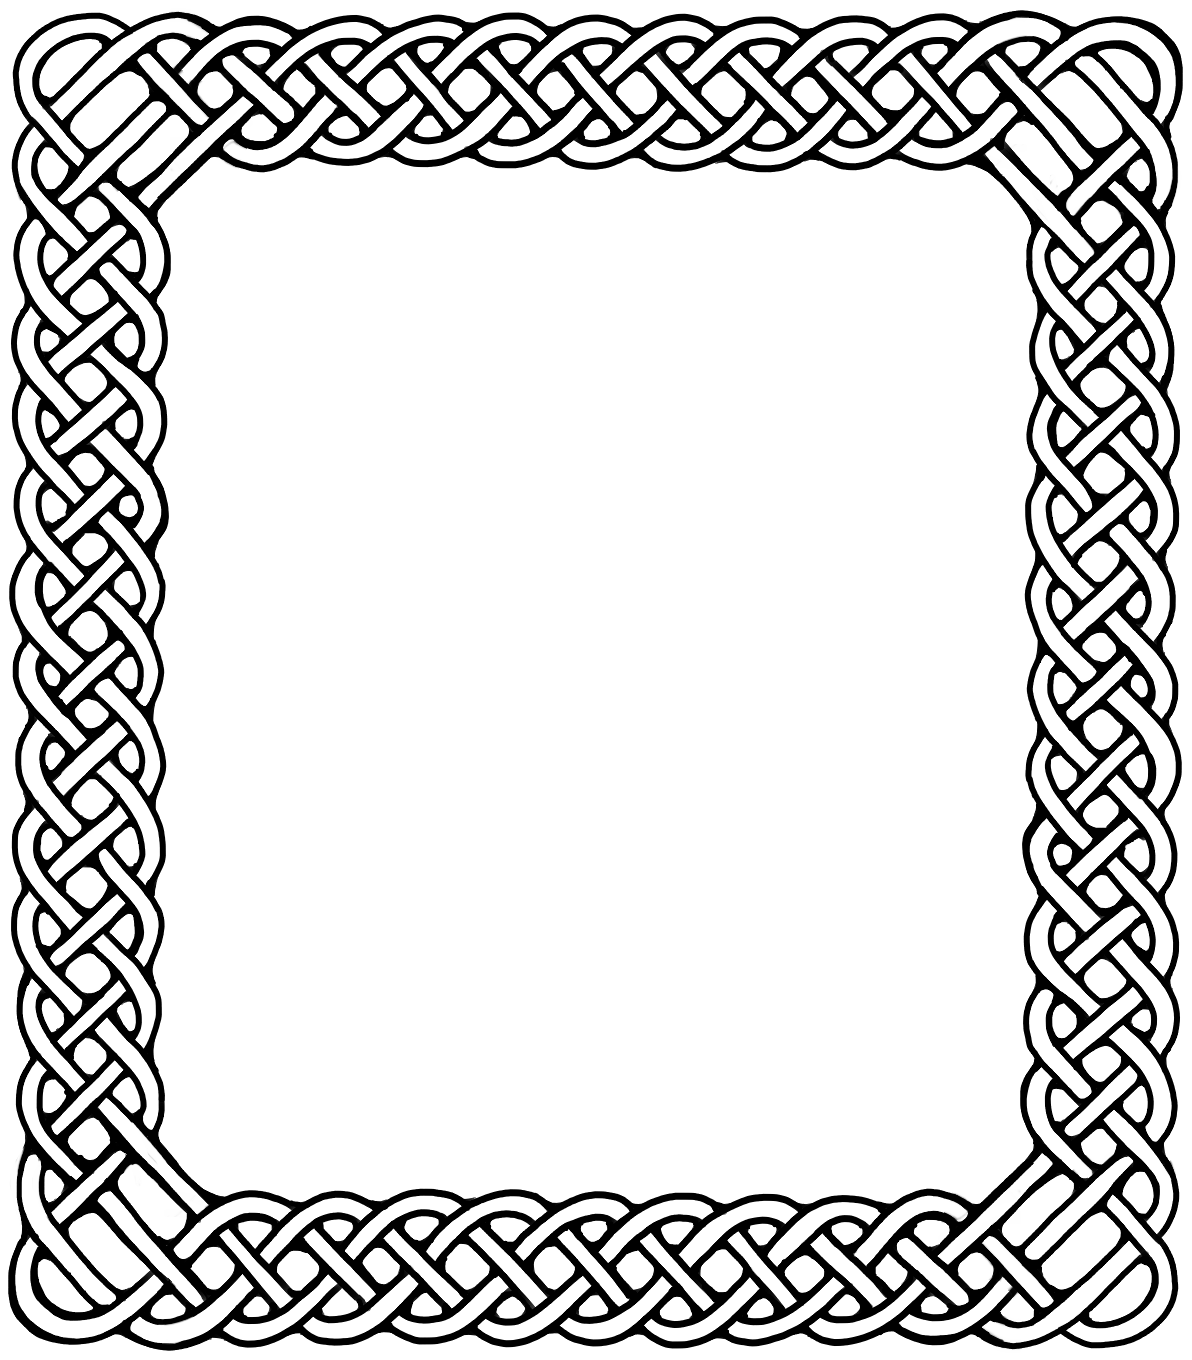 Fantasy border png. Celtic knot knotting watkanjewel